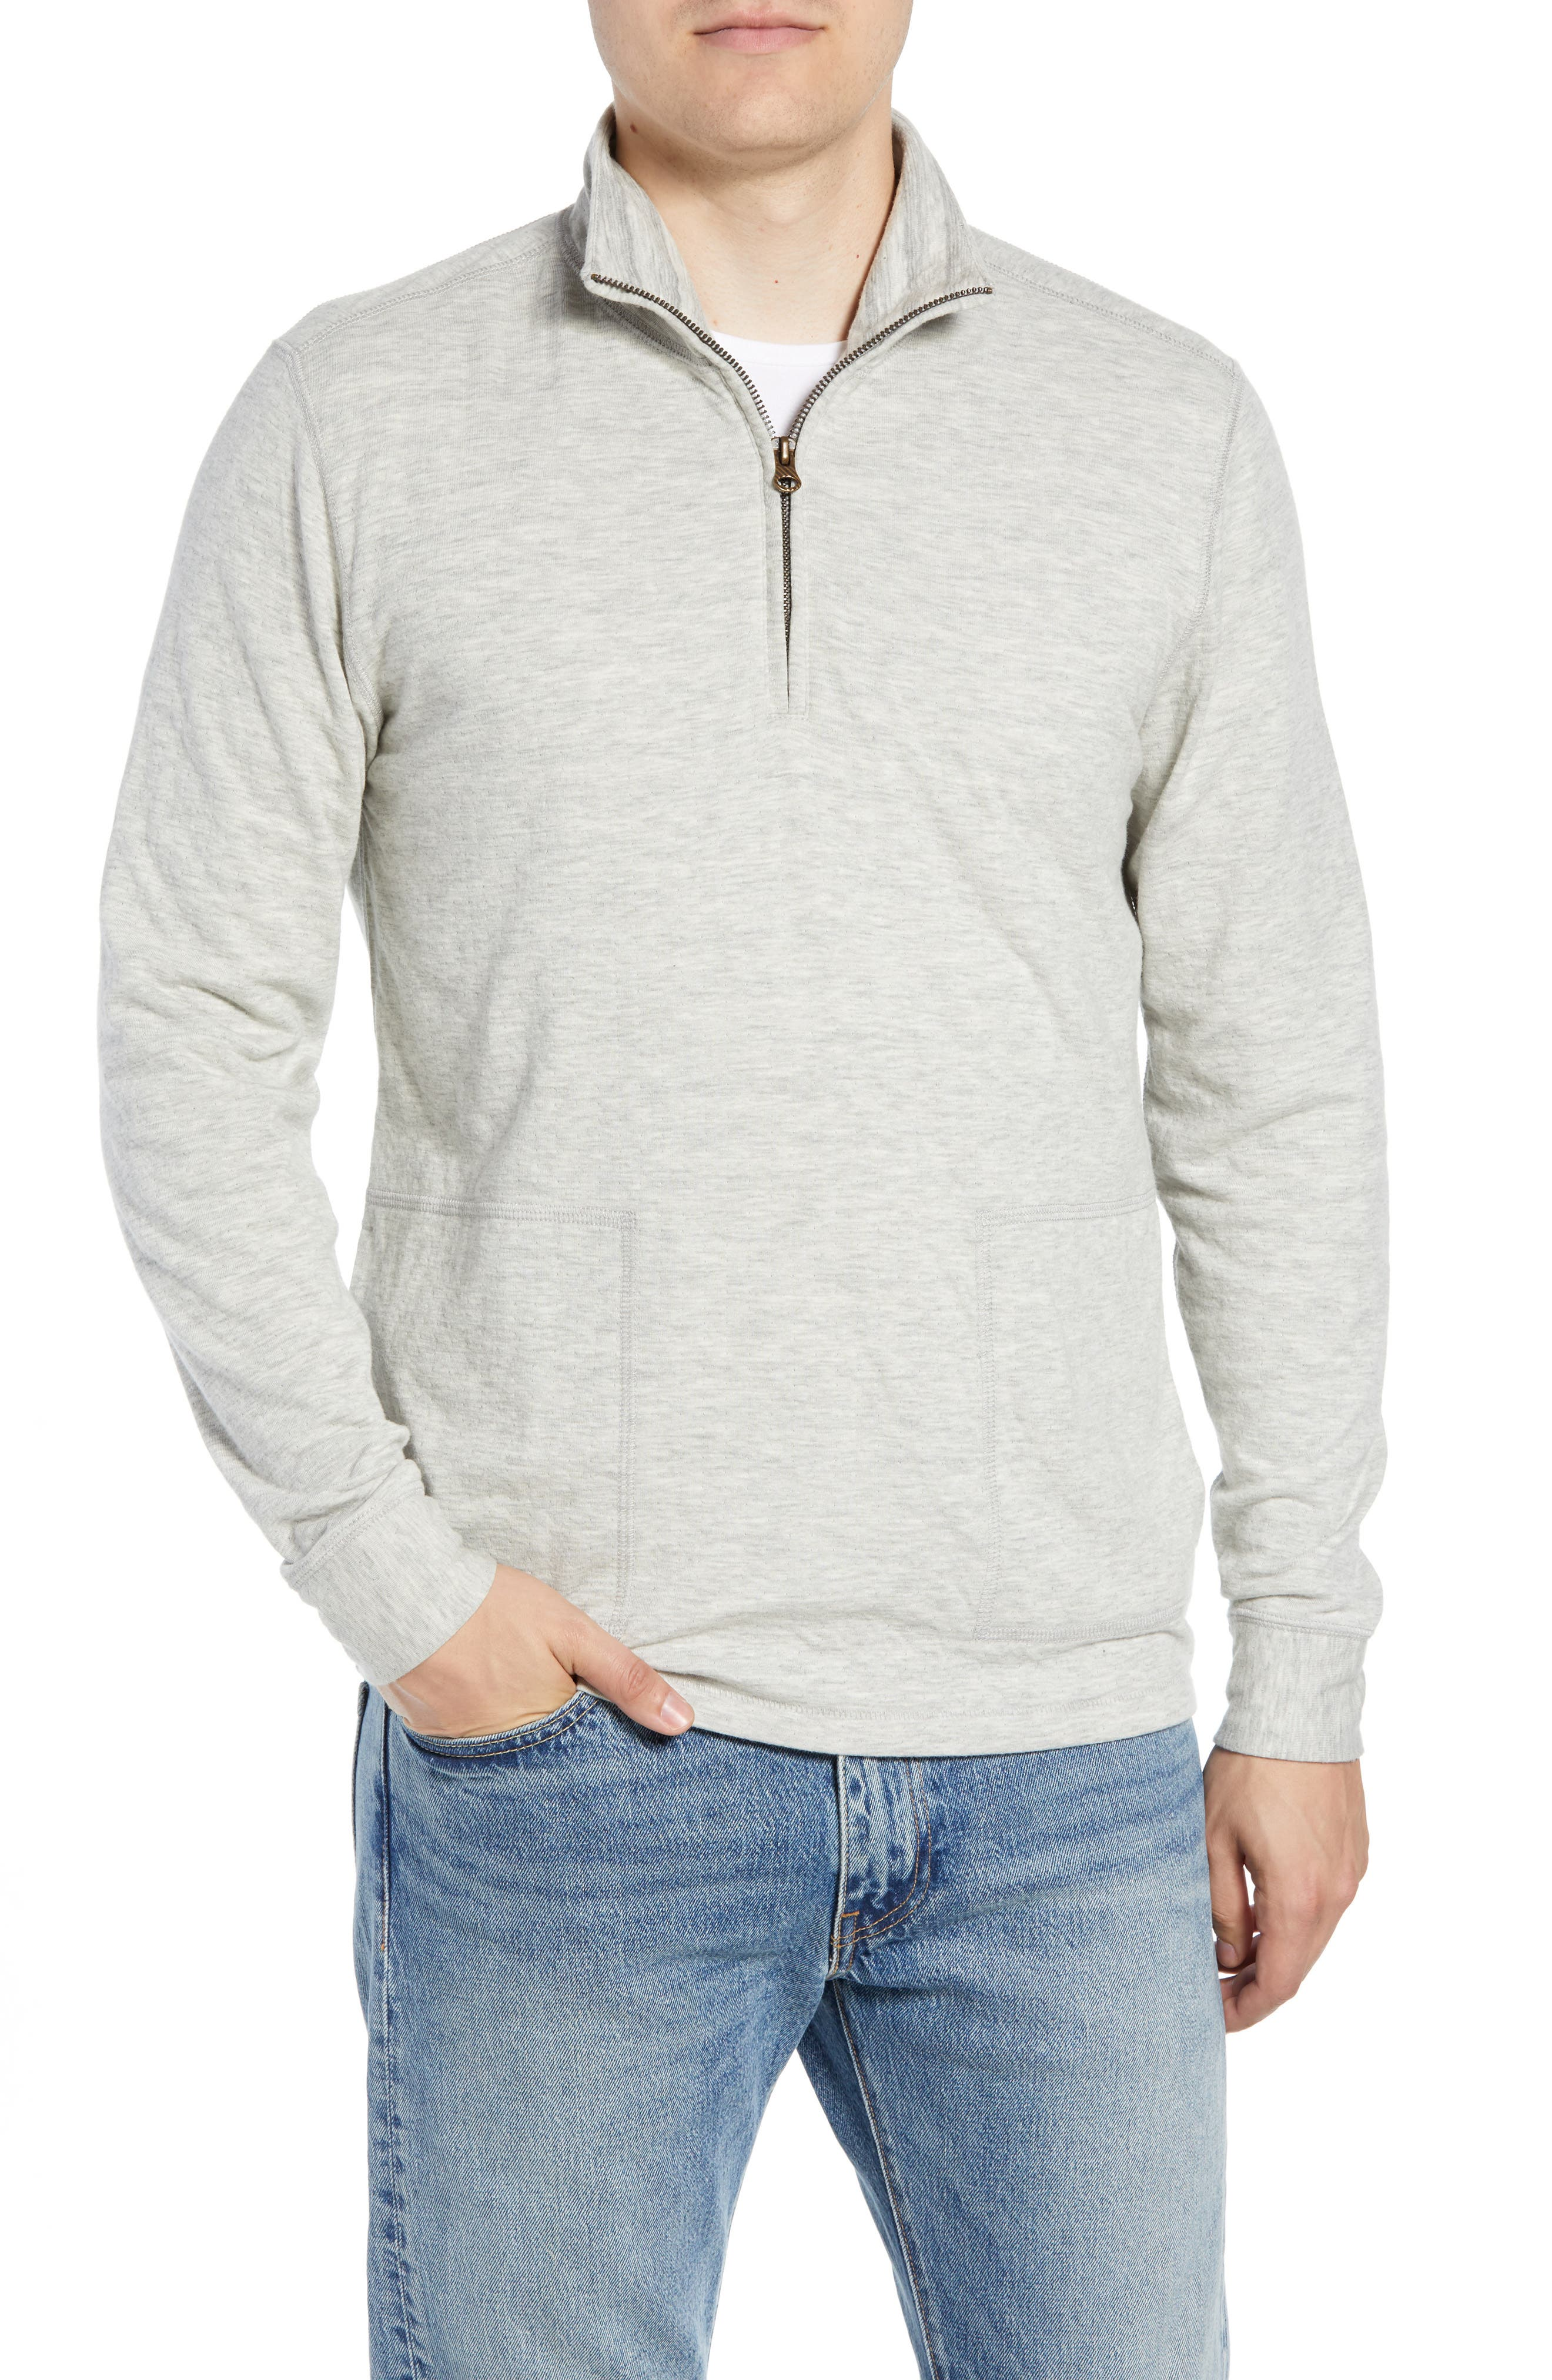 Charles Regular Fit Half Zip Sweater,                             Main thumbnail 1, color,                             074